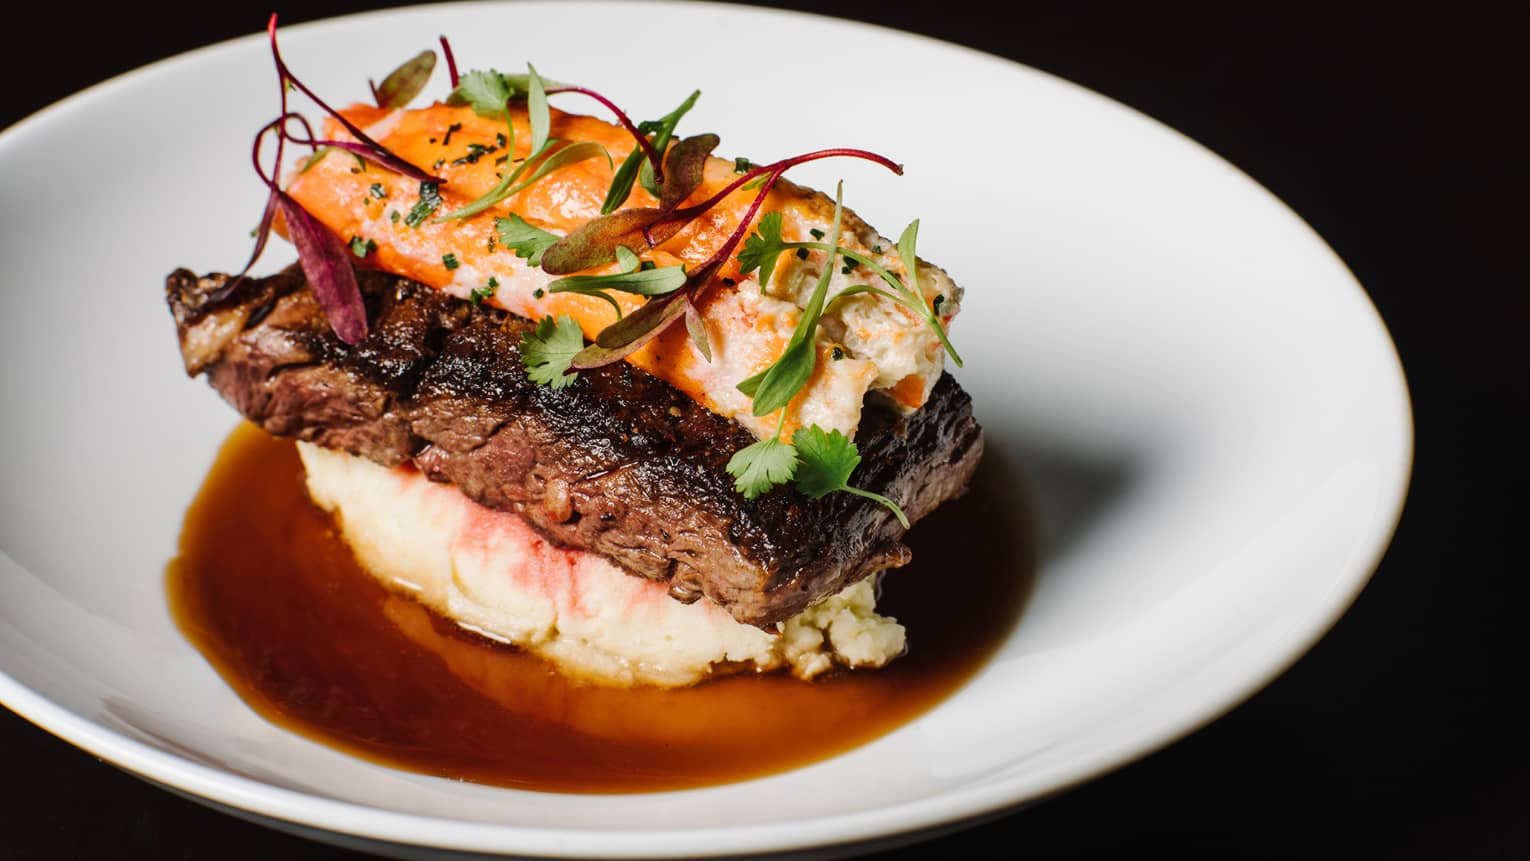 Close-up of grilled steak topped with lobster and fresh herbs, on bed of mashed potato with jus